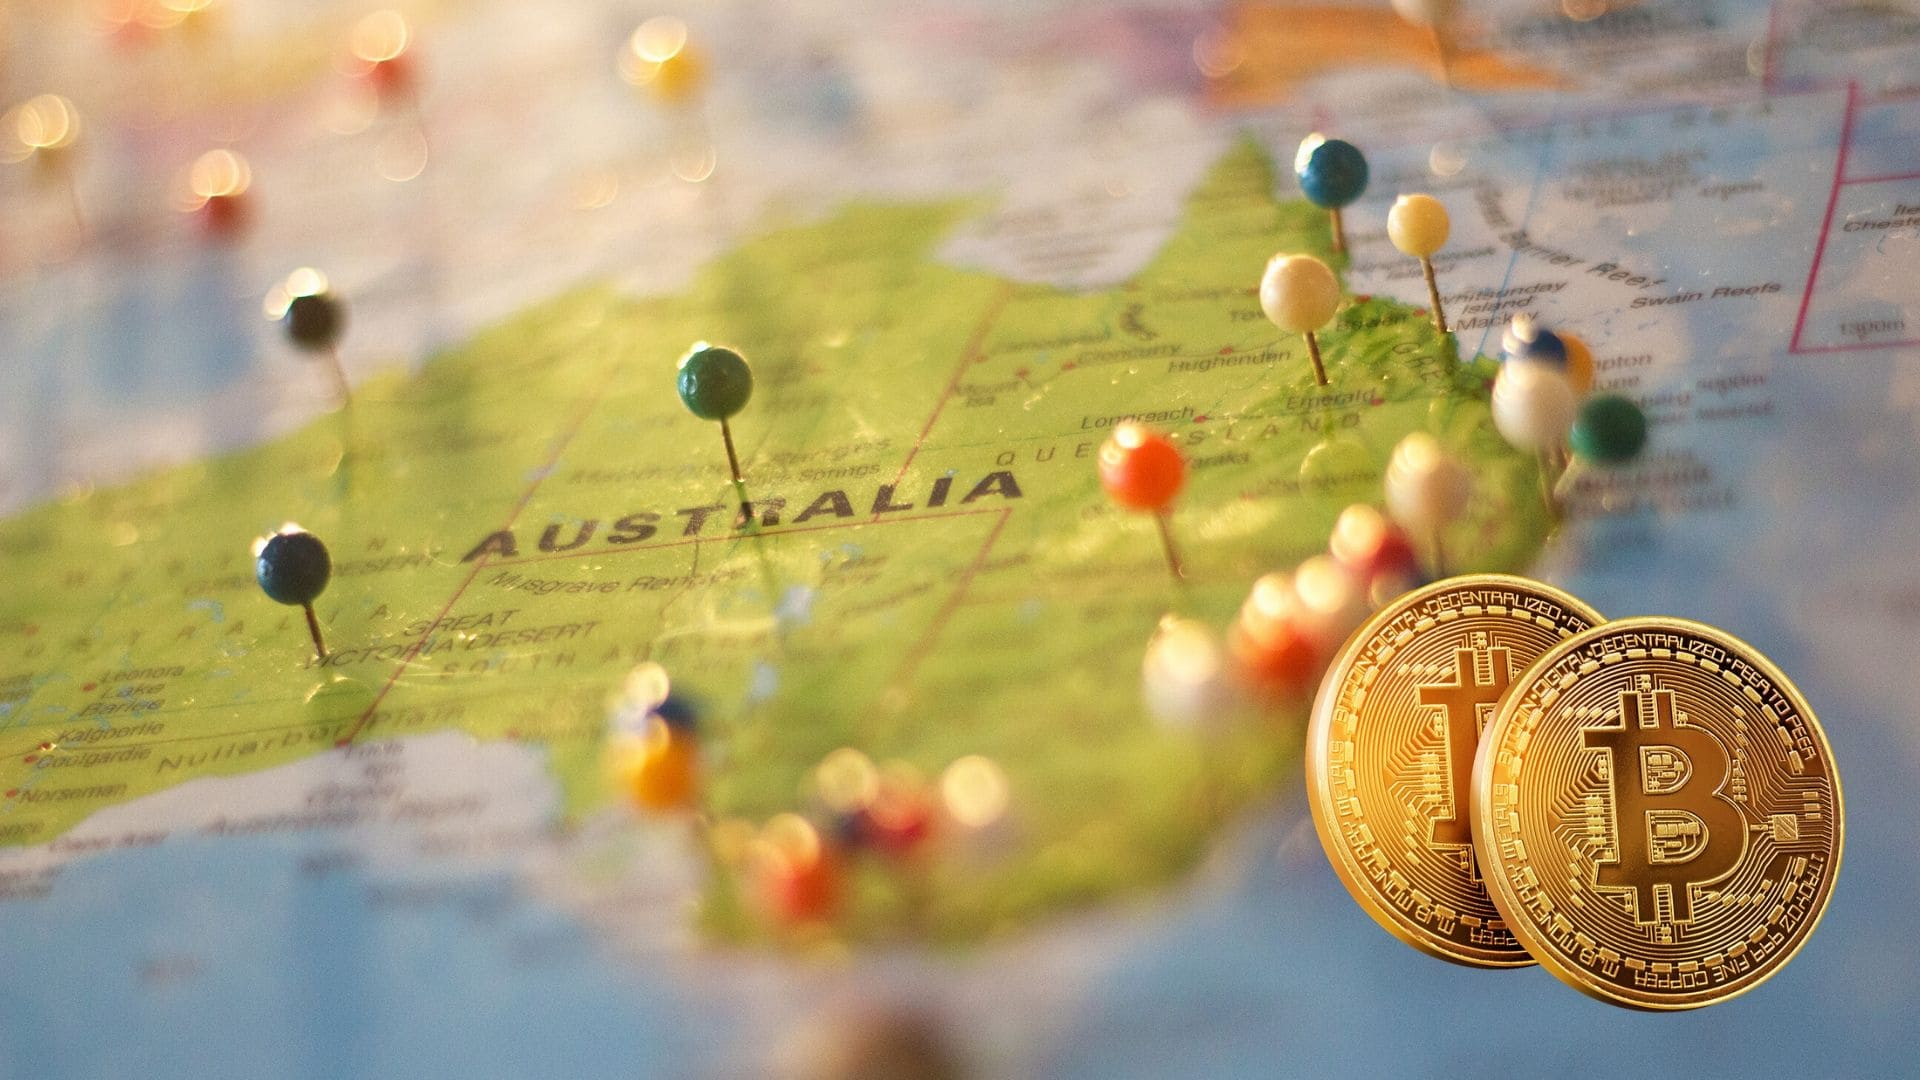 Aussie Crypto Unicorn Raises $160M Funding From 'Big Four' Bank